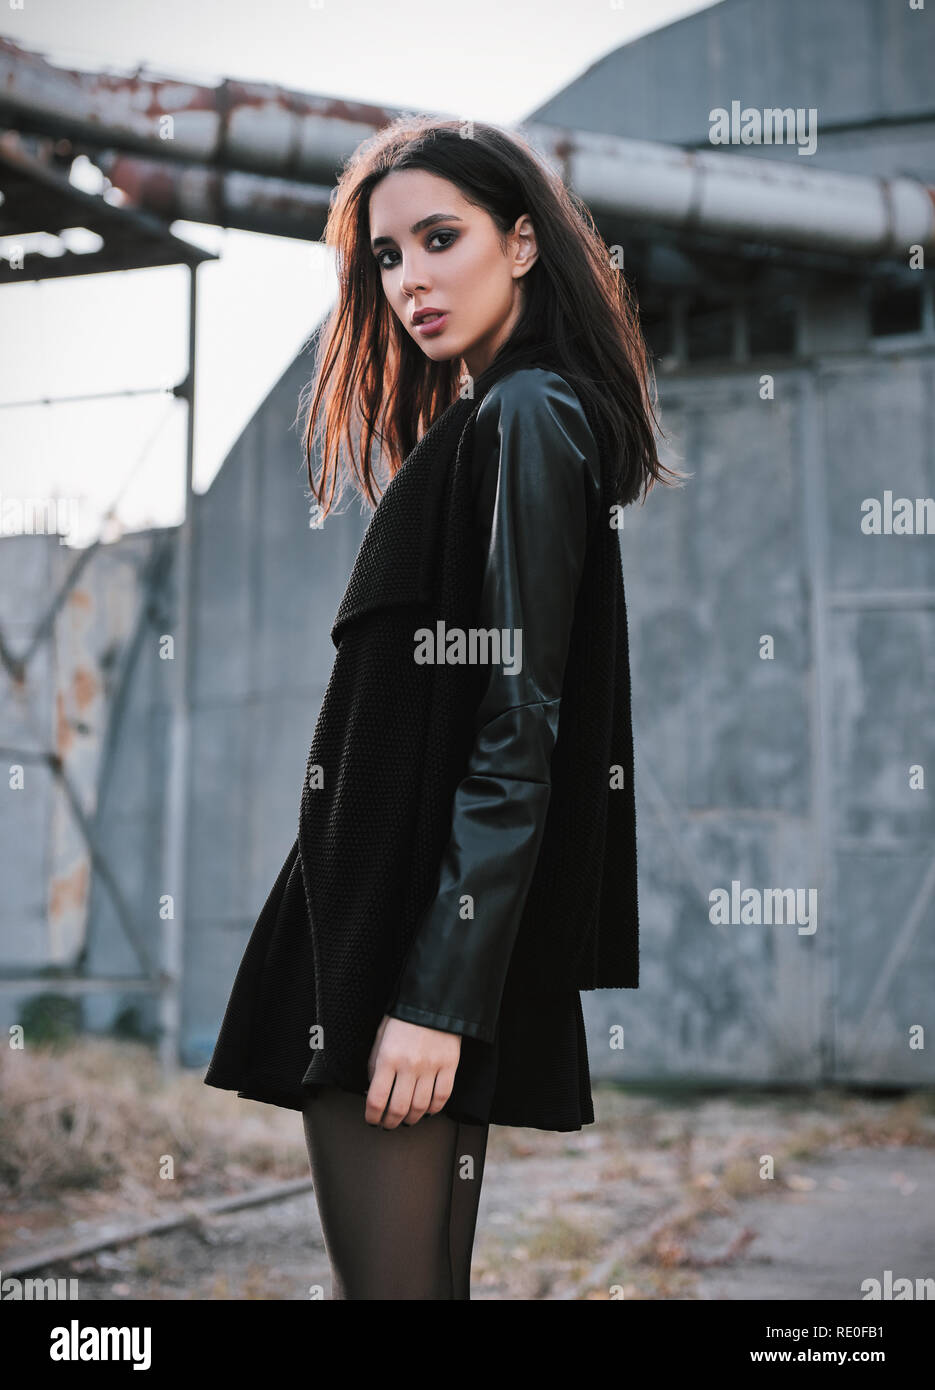 Fashion shot: portrait of the beautiful rock girl (informal model) dressed in black jacket standing at industrial place - Stock Image